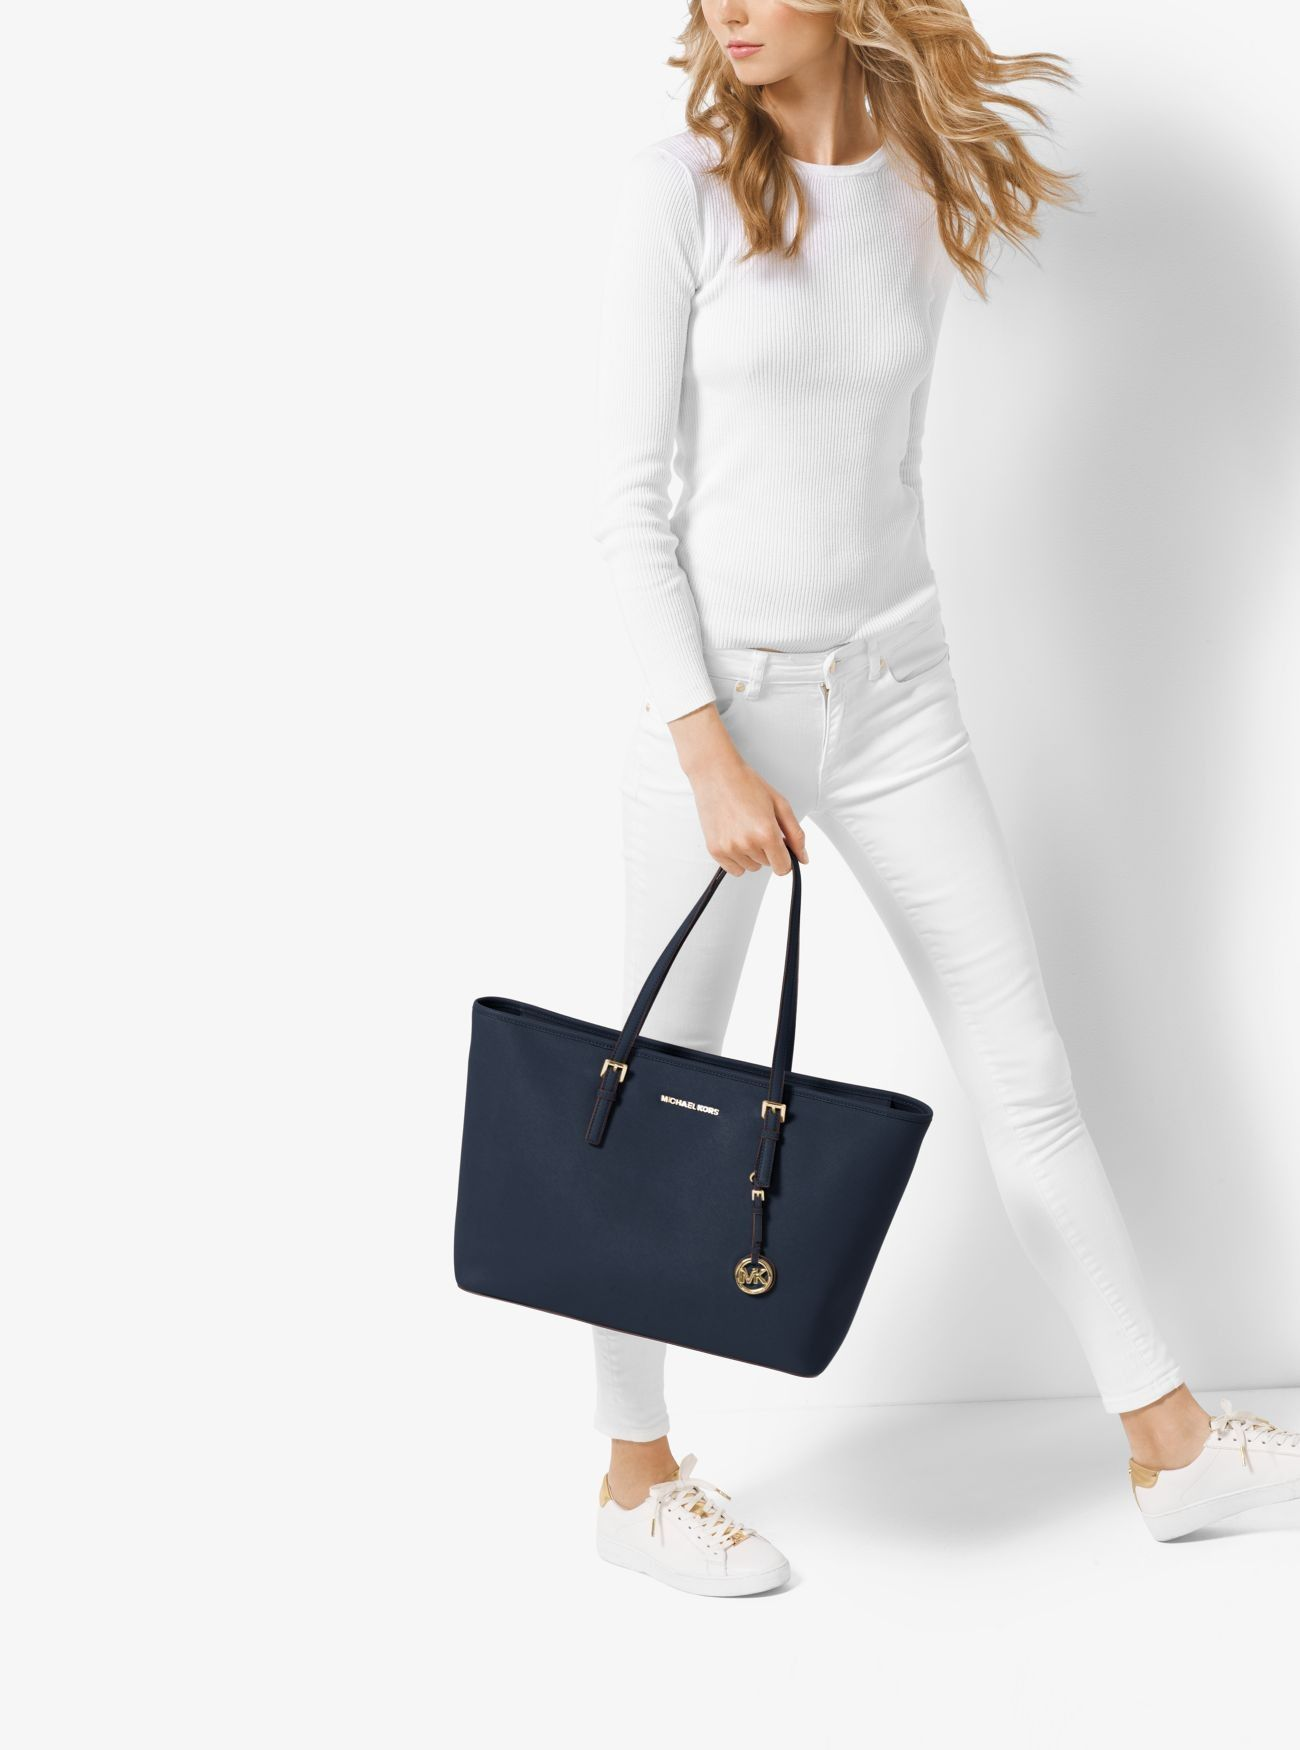 66e5718eb07f Outlet Michael Kors Admiral Jet Set Travel Medium Saffiano Leather Top-Zip  Tote Sale Online